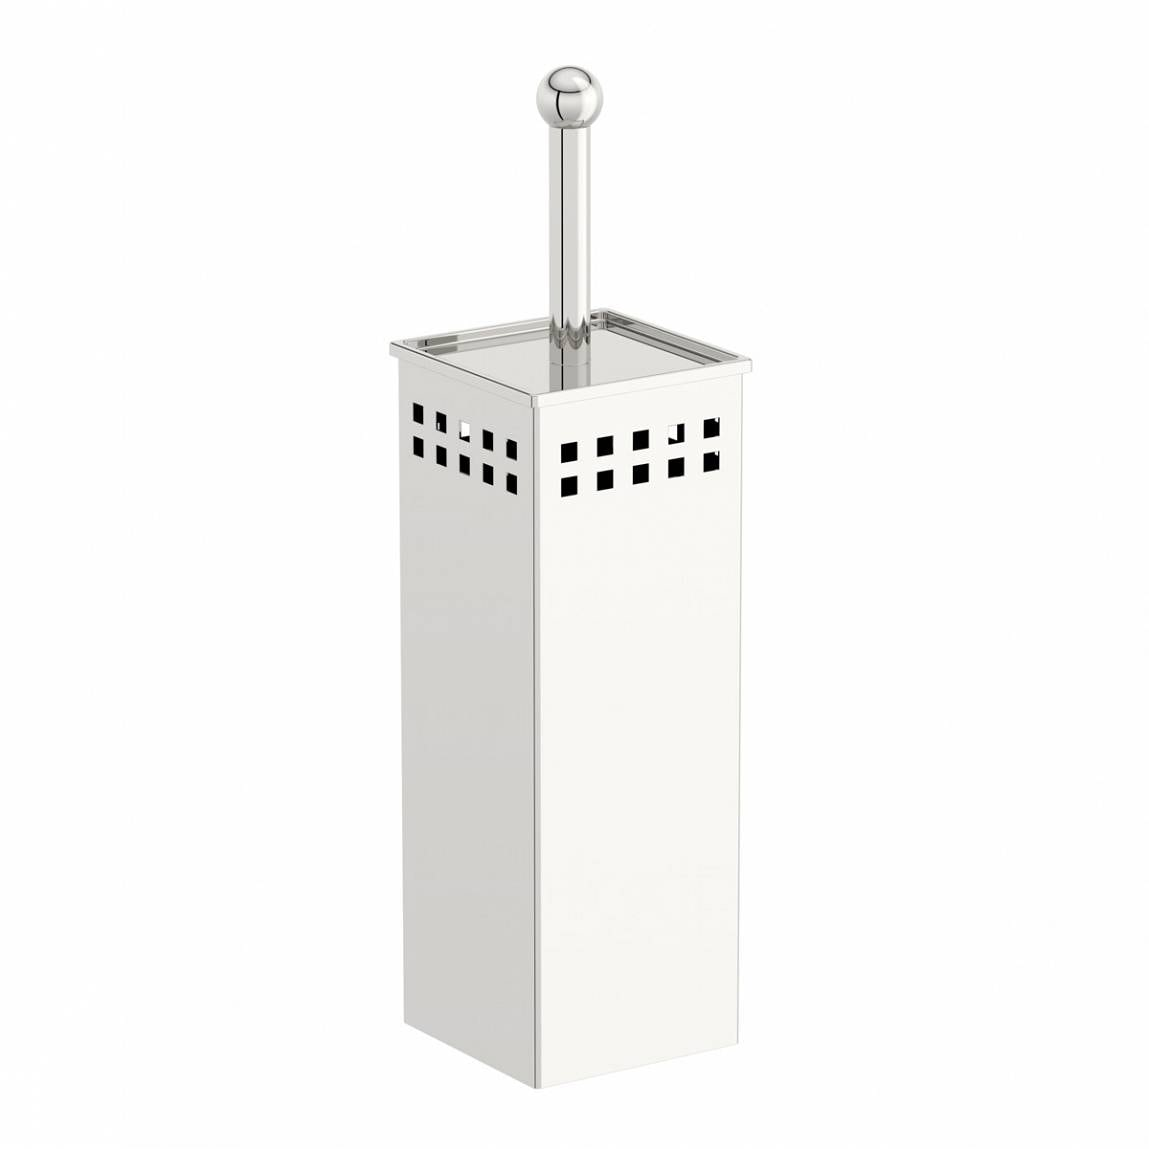 Croydex Freestanding Stainless Steel Polished Finish Toilet Brush and Holder